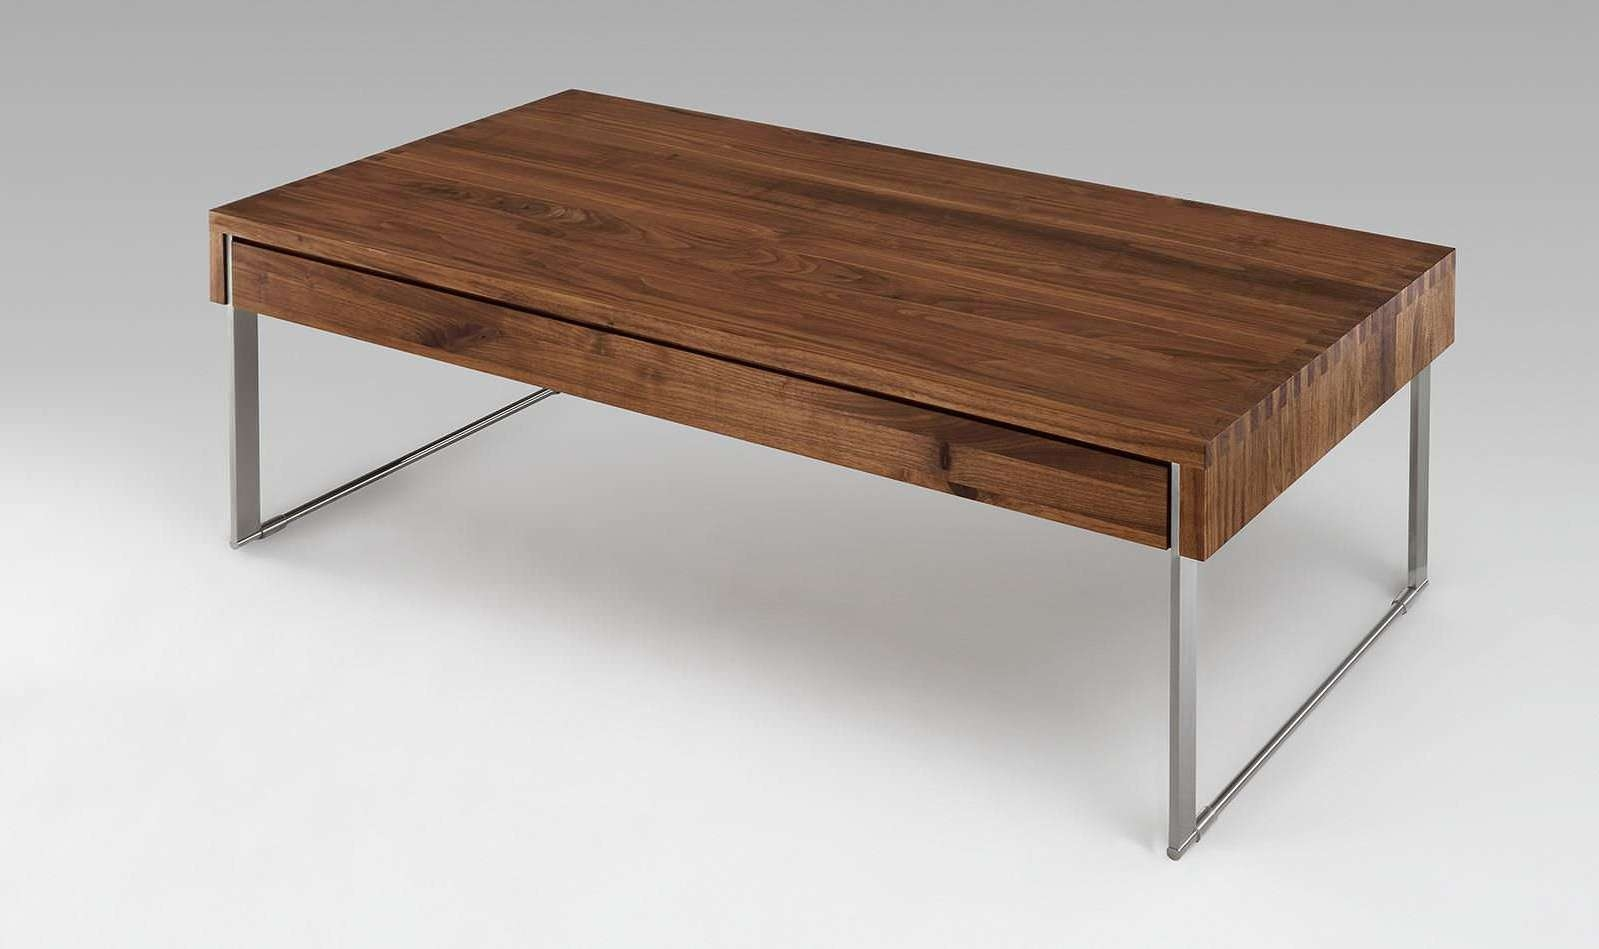 Trendy Coffee Tables Solid Wood Intended For Contemporary Coffee Table / Solid Wood / Rectangular / With Drawer (View 17 of 20)